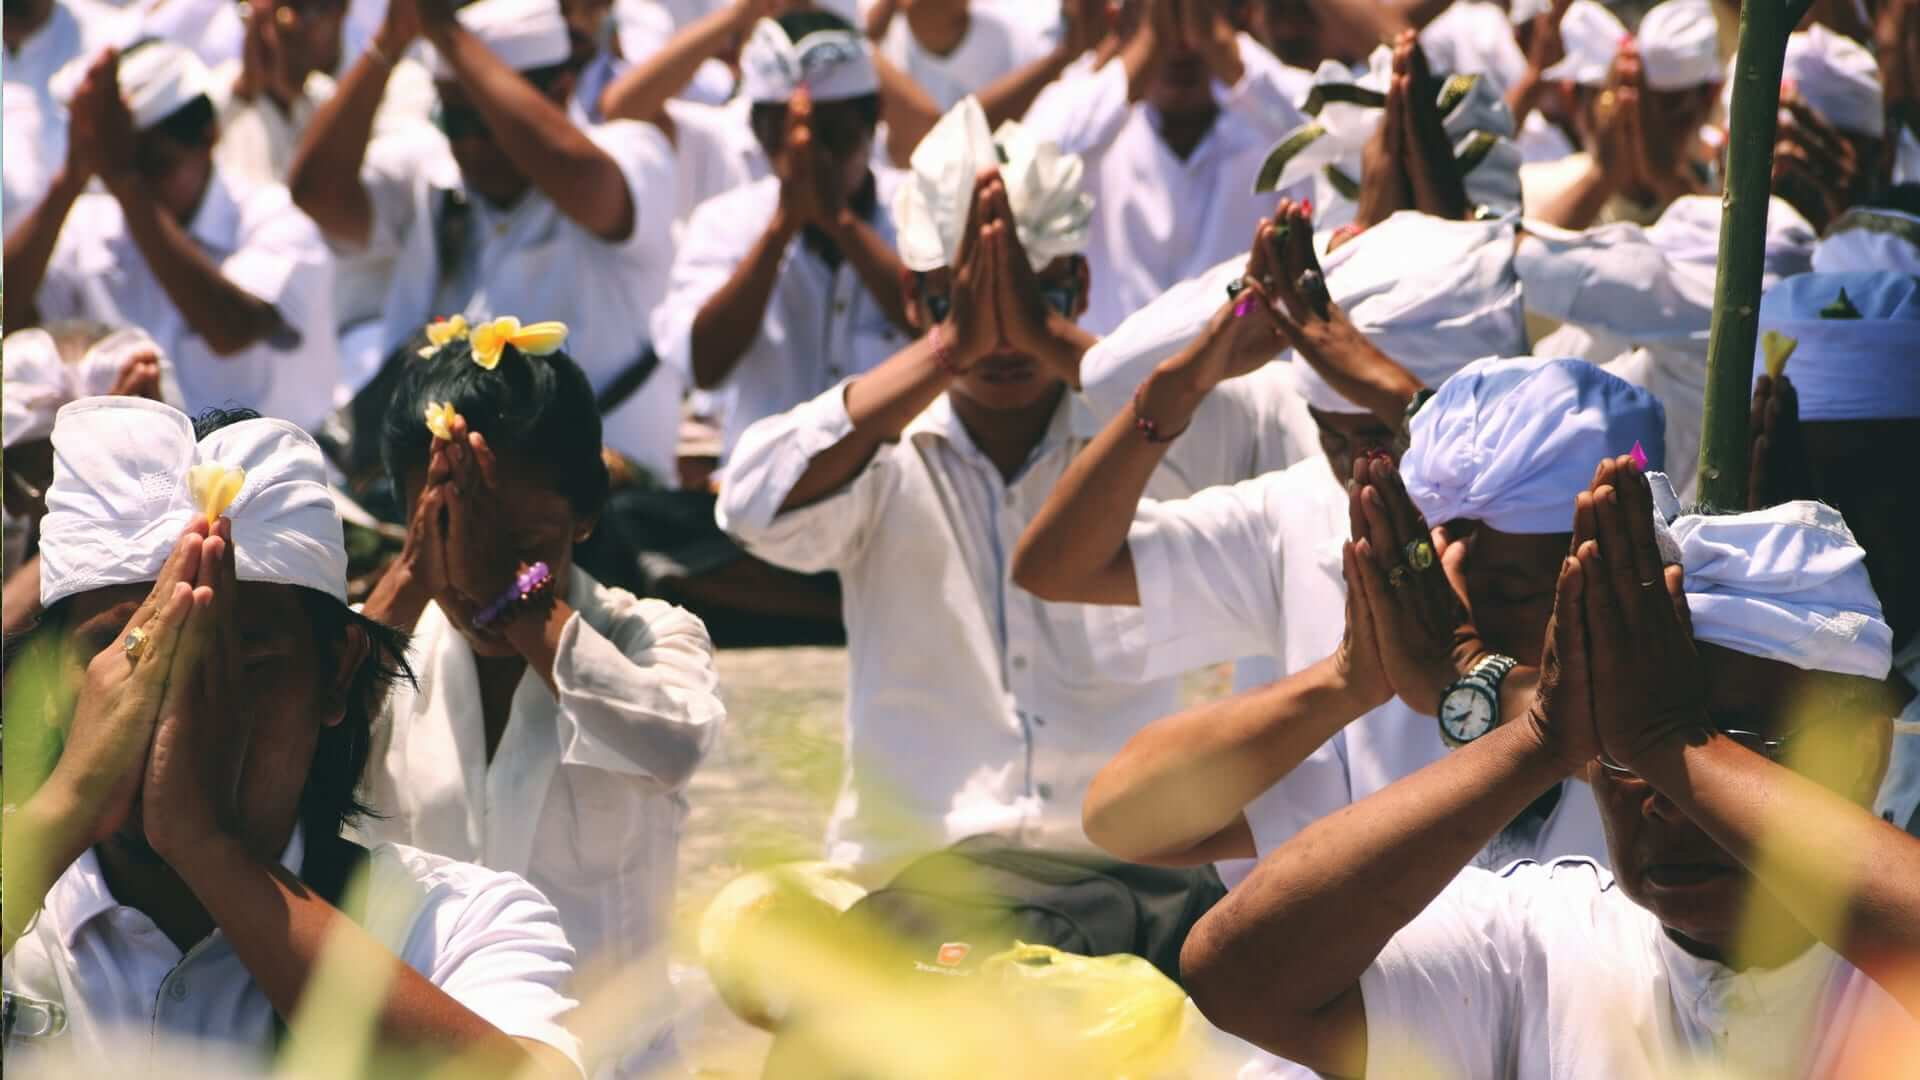 Balinese in white clothes practicing their religion in Bali.